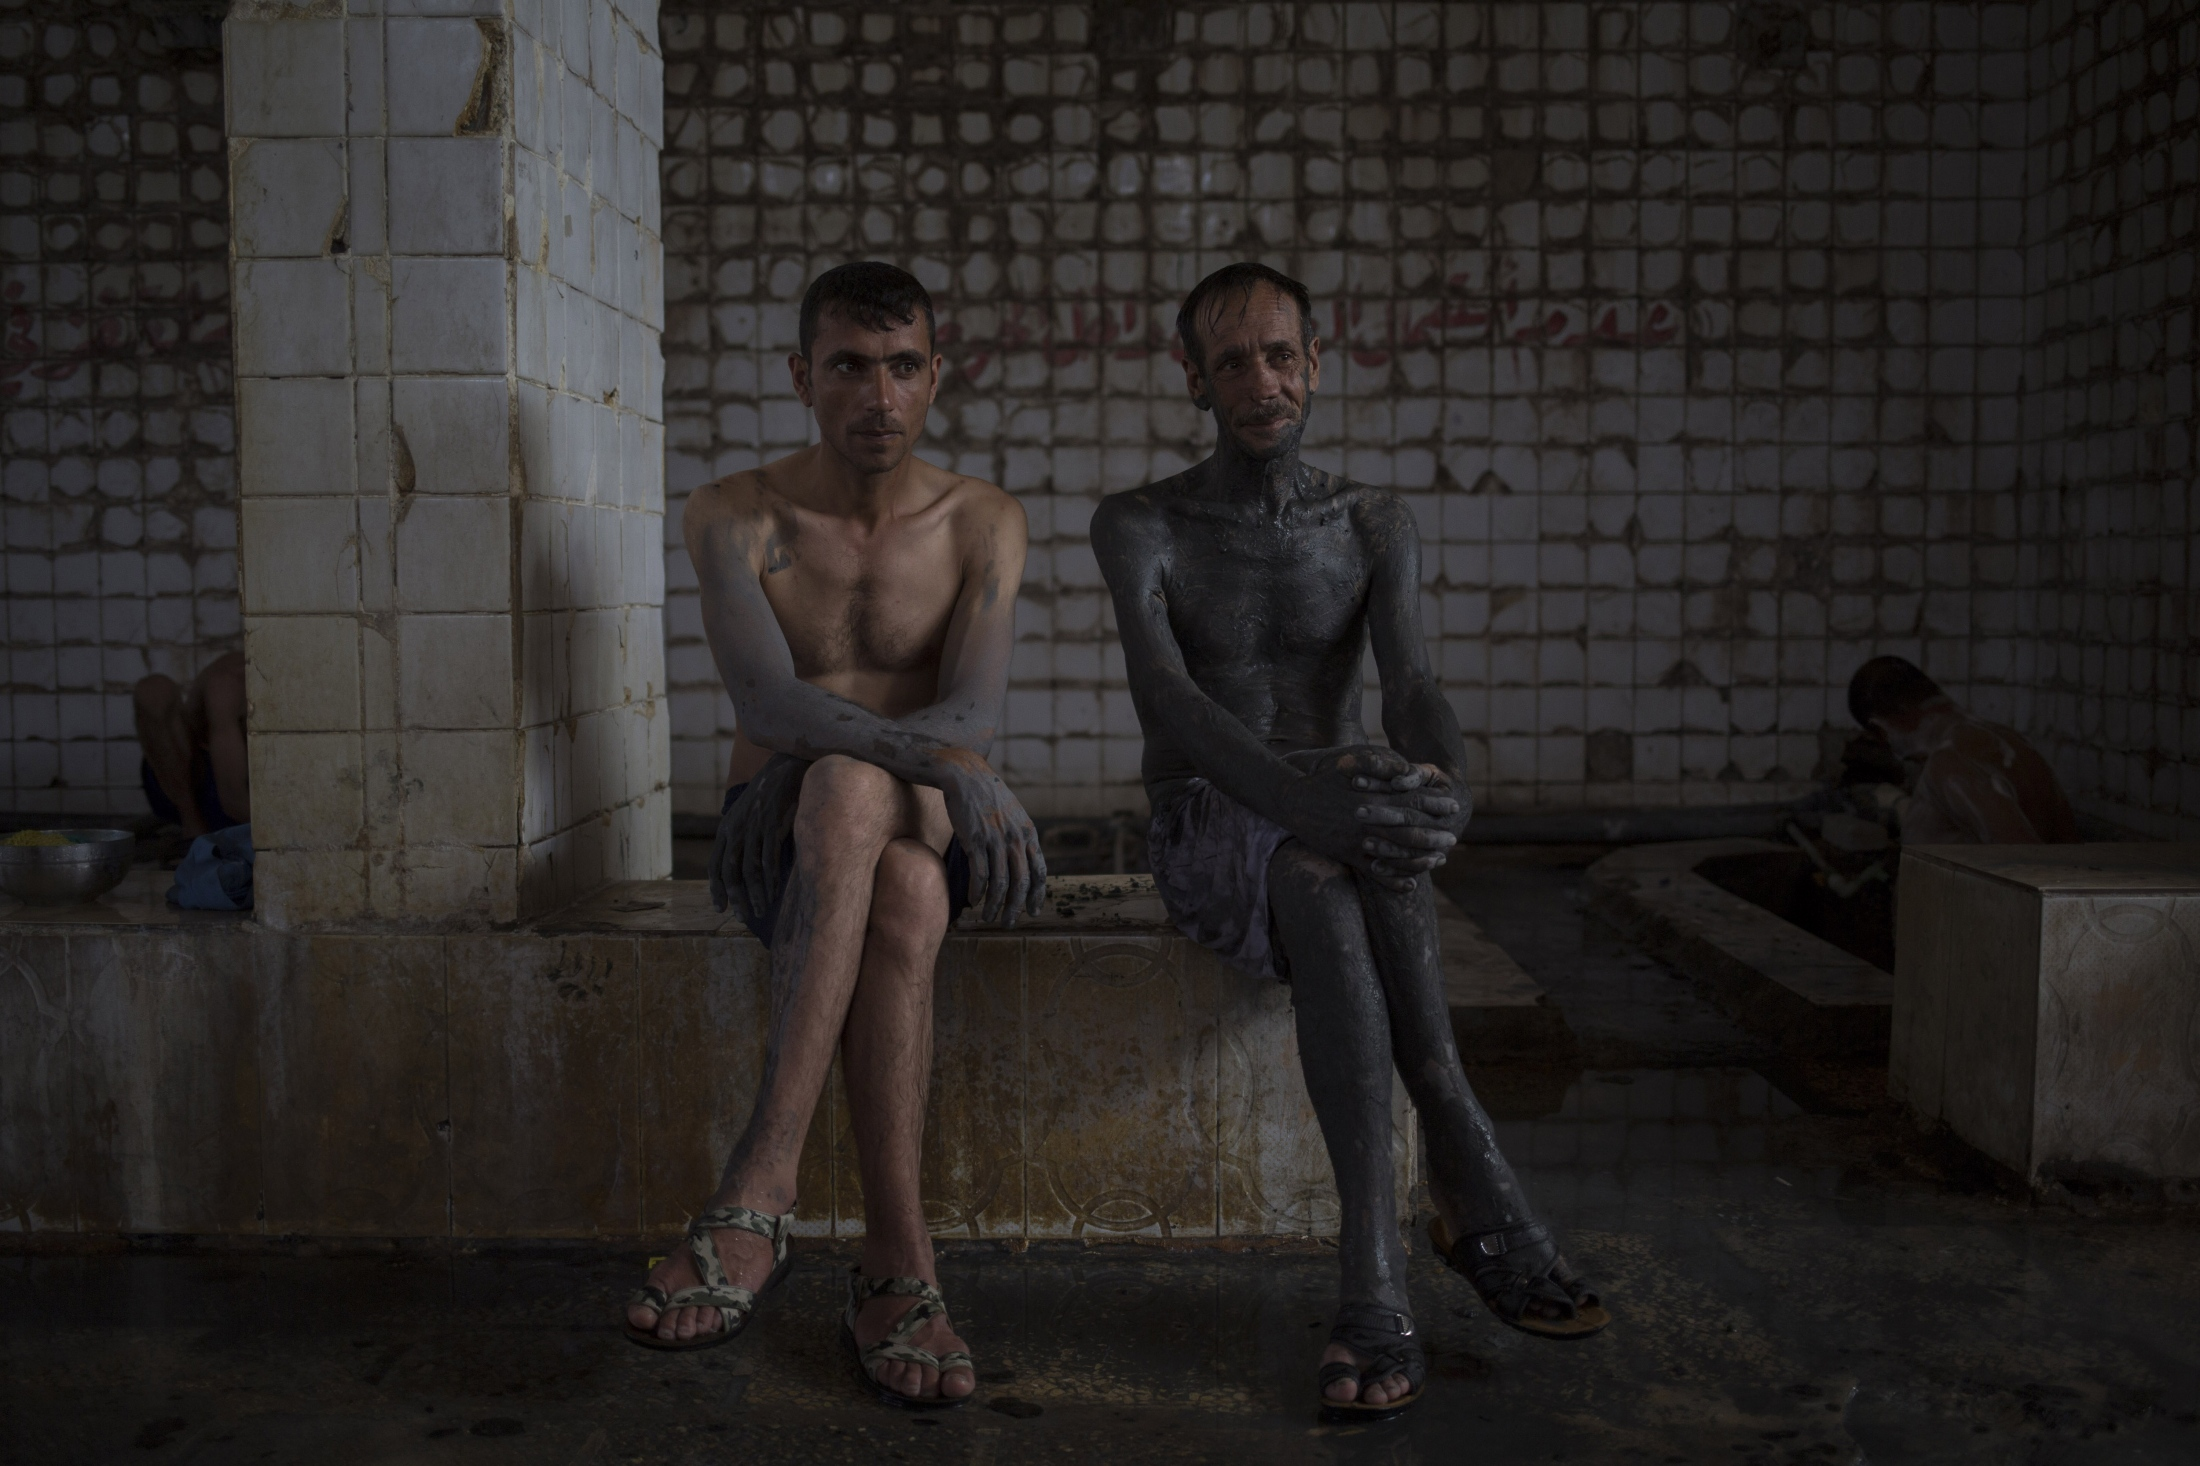 Two customers of the Hamam Alil spa south of Mosul, Iraq, take a break from bathing after covering themselves with mud from a nearby sulphur well, Thursday, April 27, 2017. The mud is supposedly healthy for the skin.